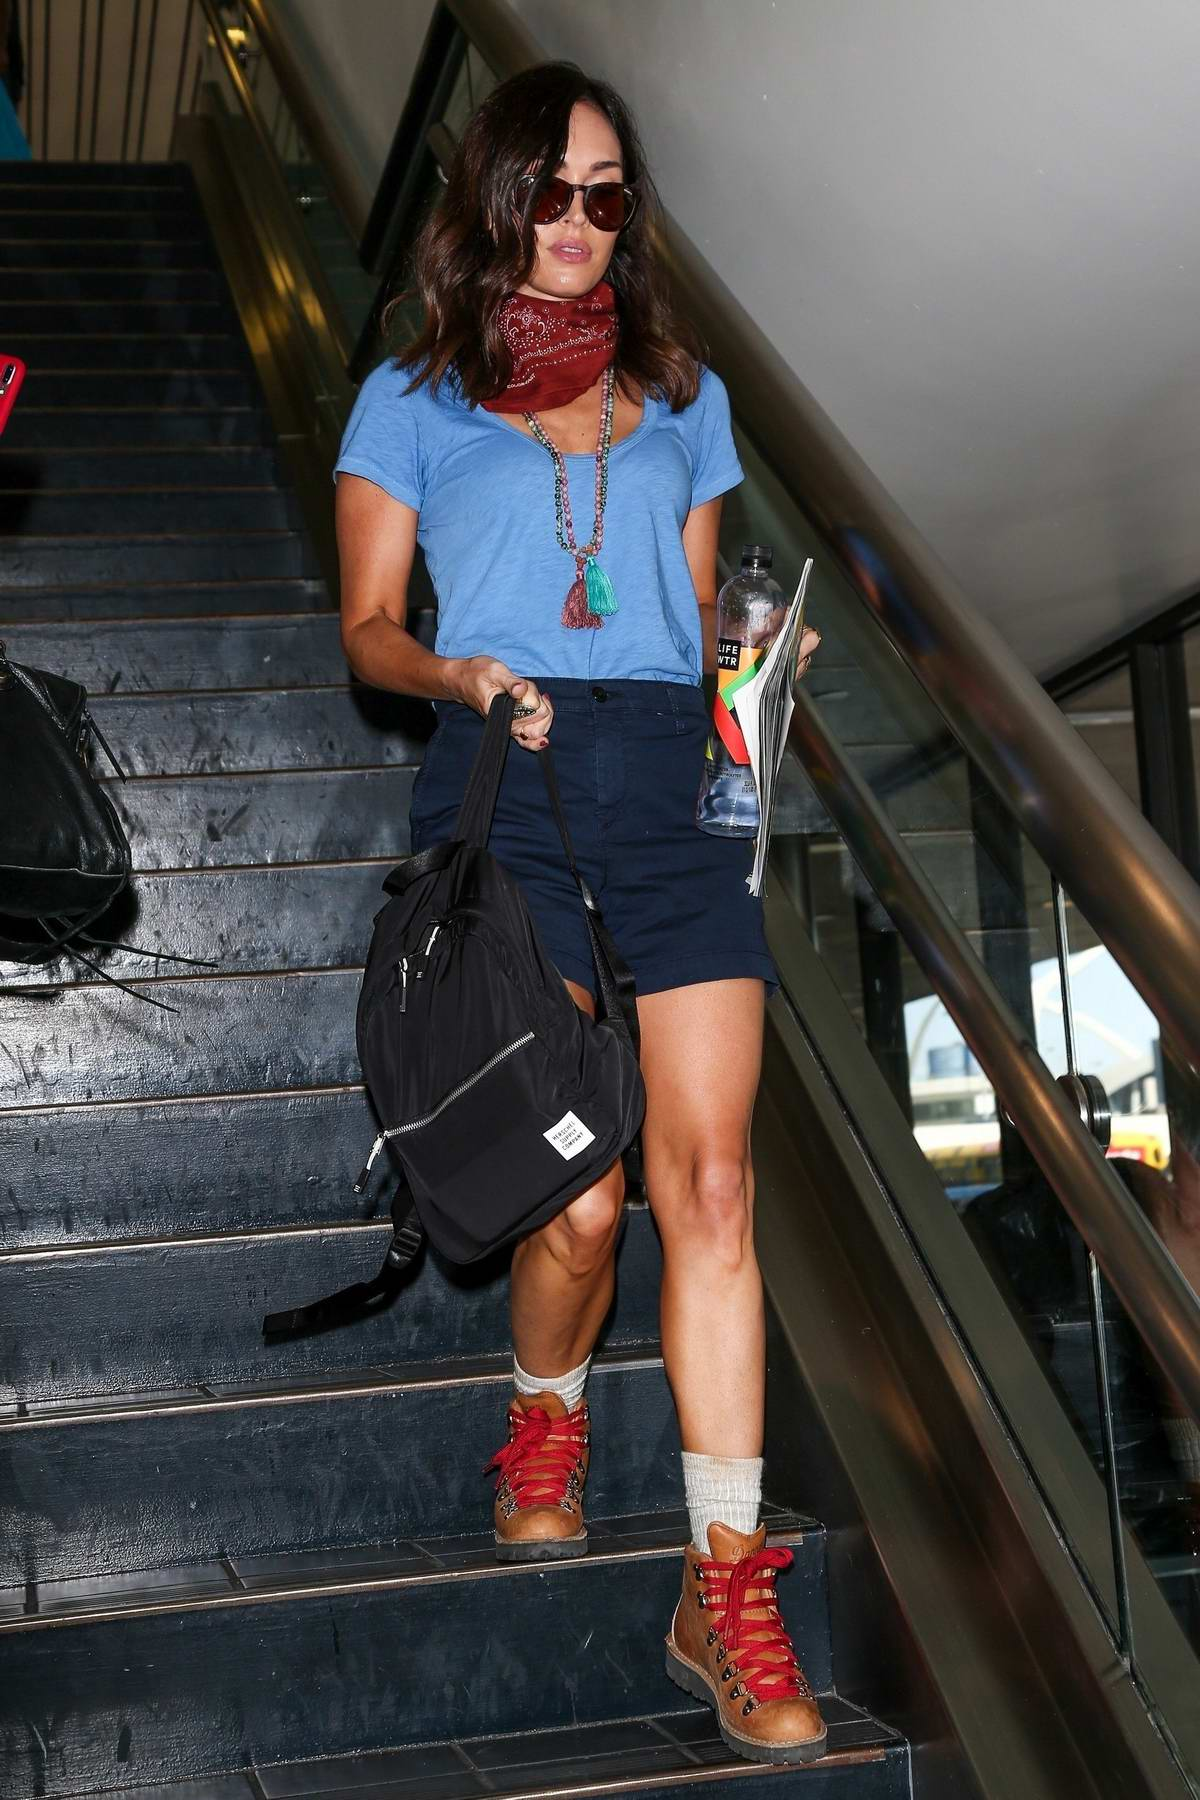 Megan Fox seen arriving on a flight at LAX airport in Los Angeles